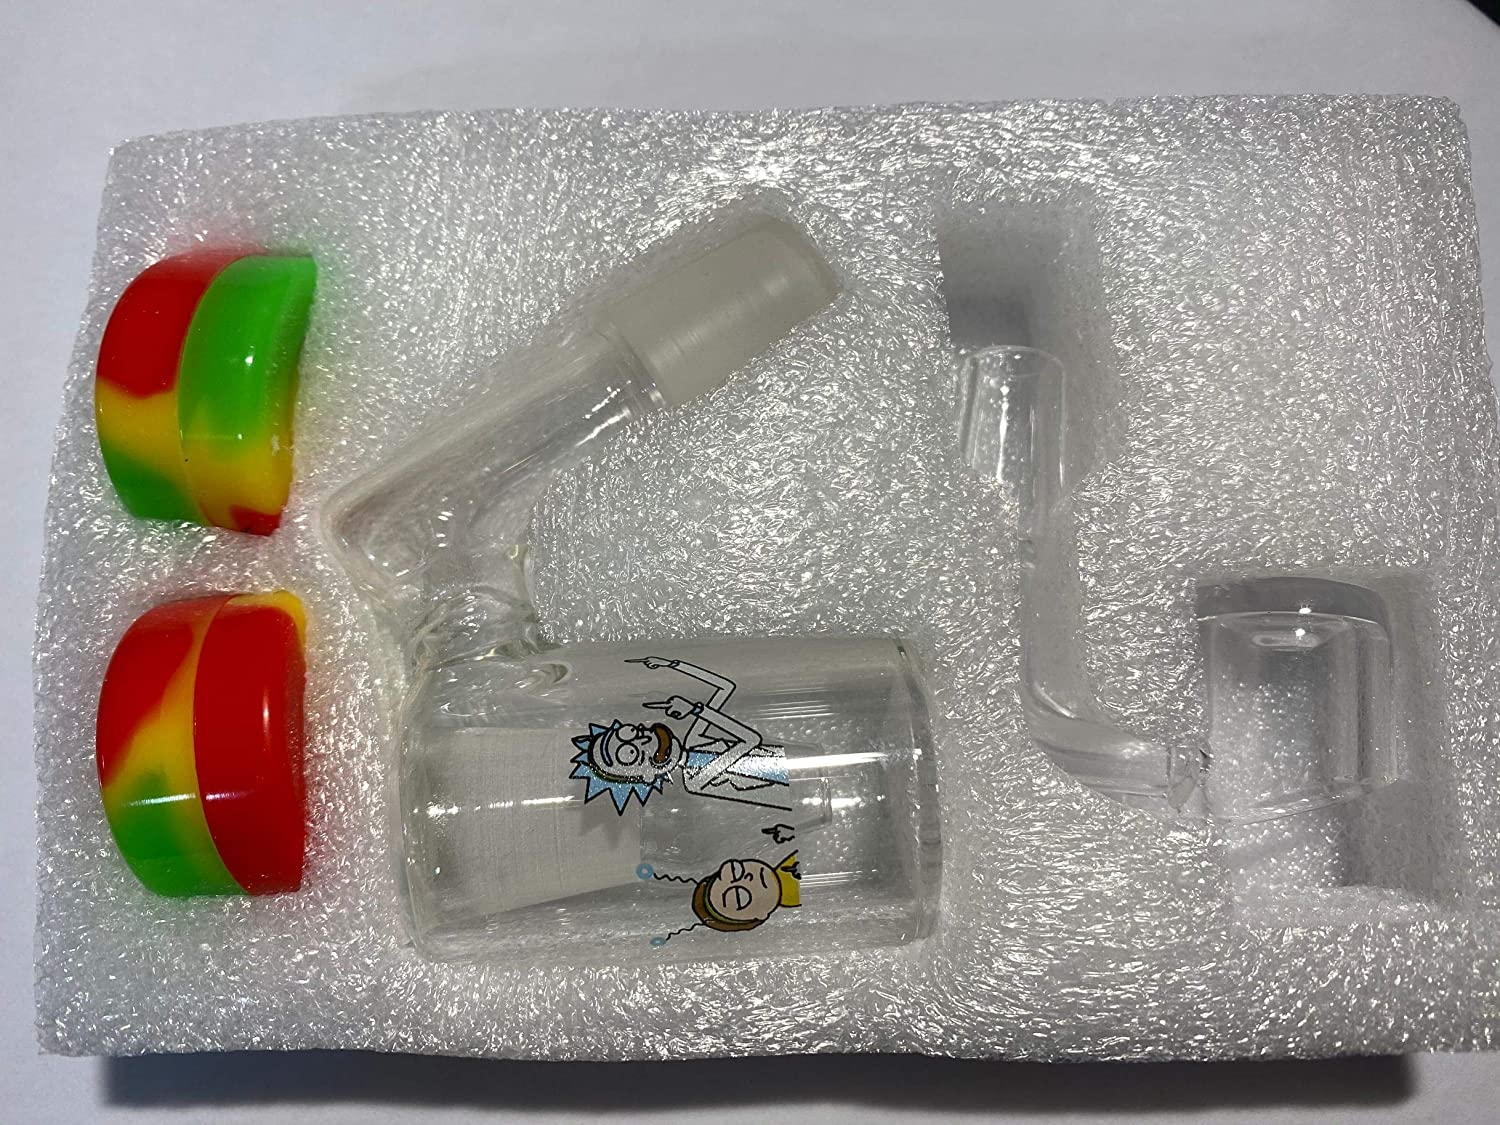 18mm 45degree DLJ-WX Can be reused 14mm 18mm Collector and Silicone Container